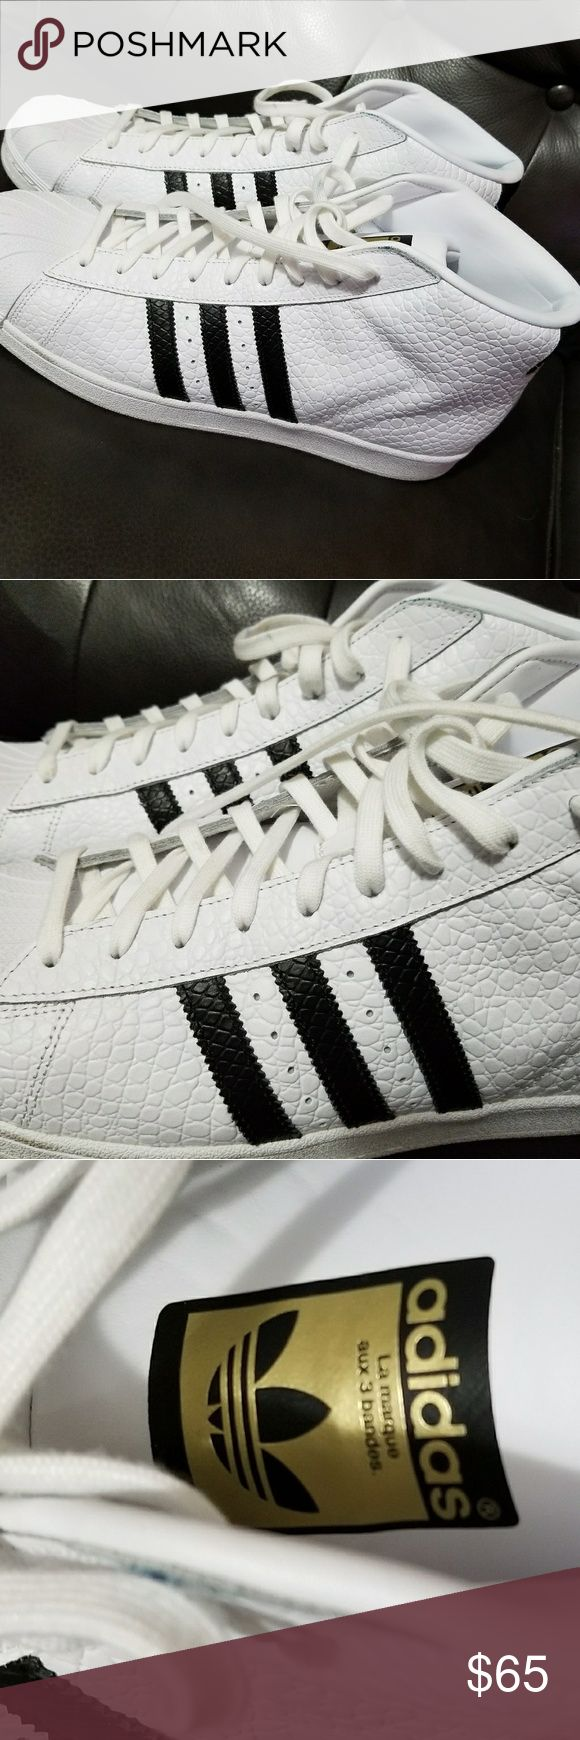 Authentic Adidas  supestar hight top shoes Only one wore once. adidas Shoes